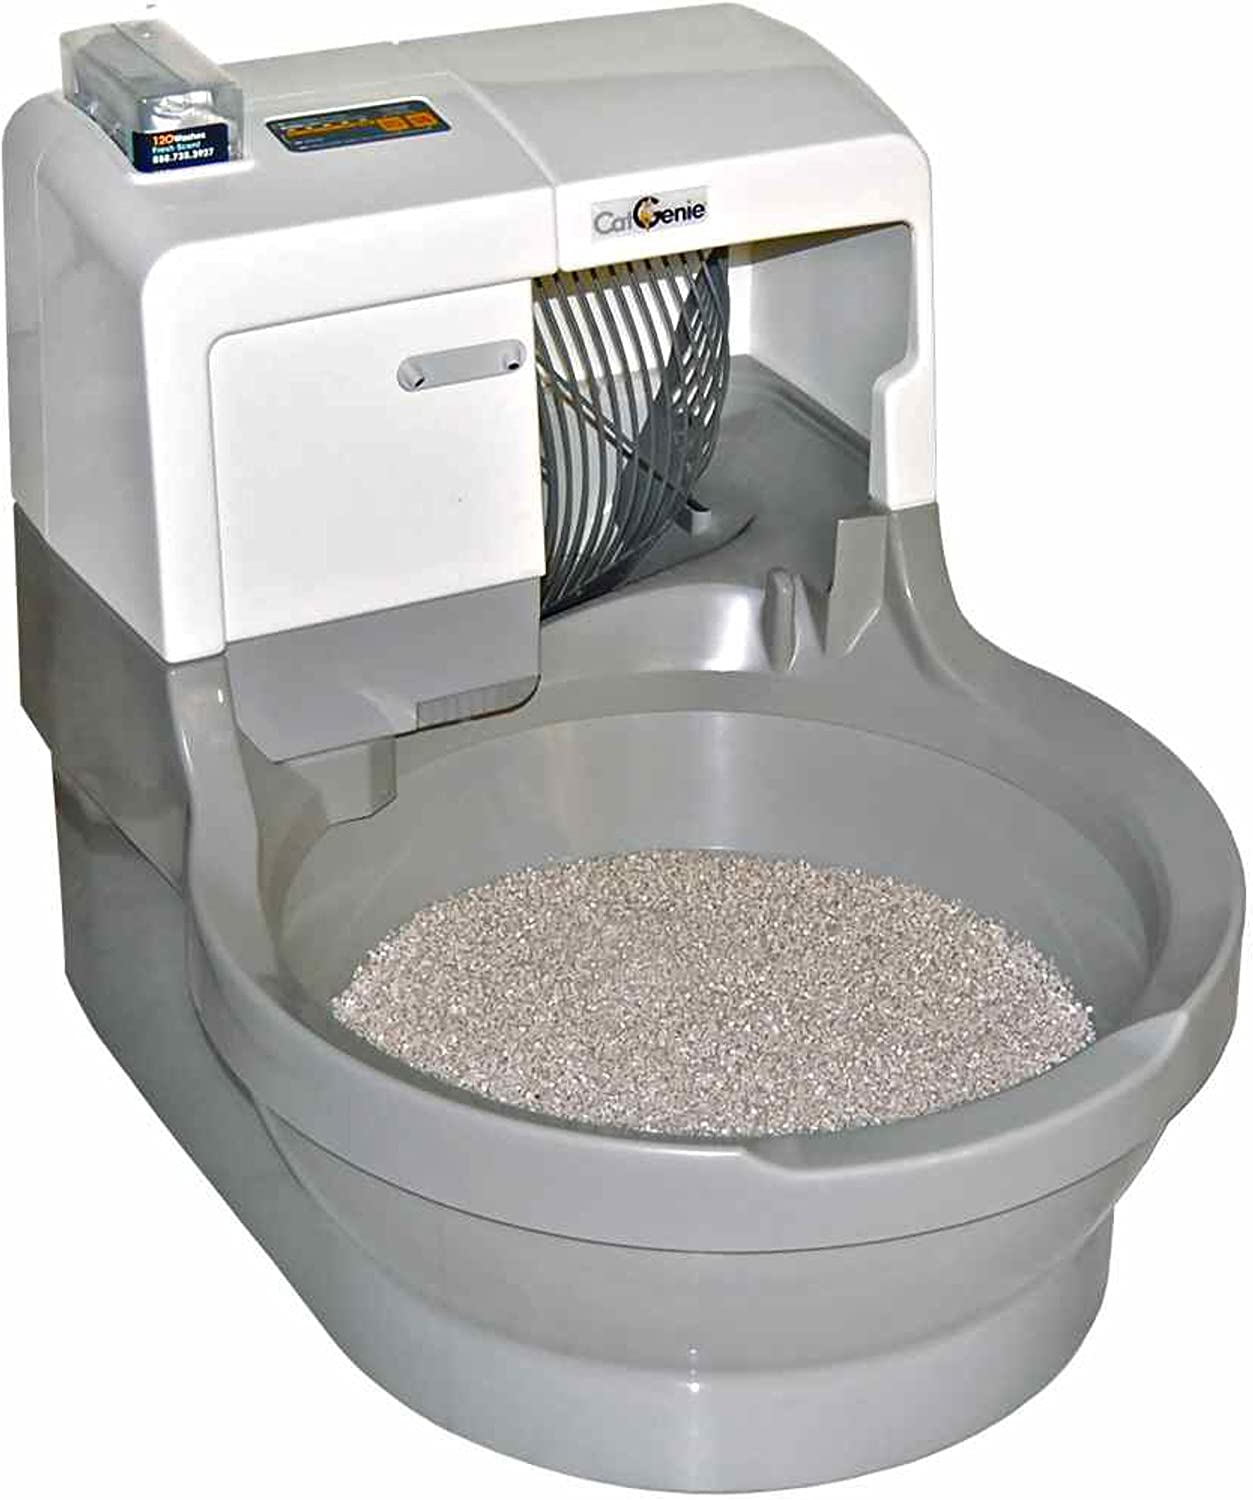 Best Self Cleaning Litter Box 2020.Catgenie Self Washing Self Flushing Cat Box